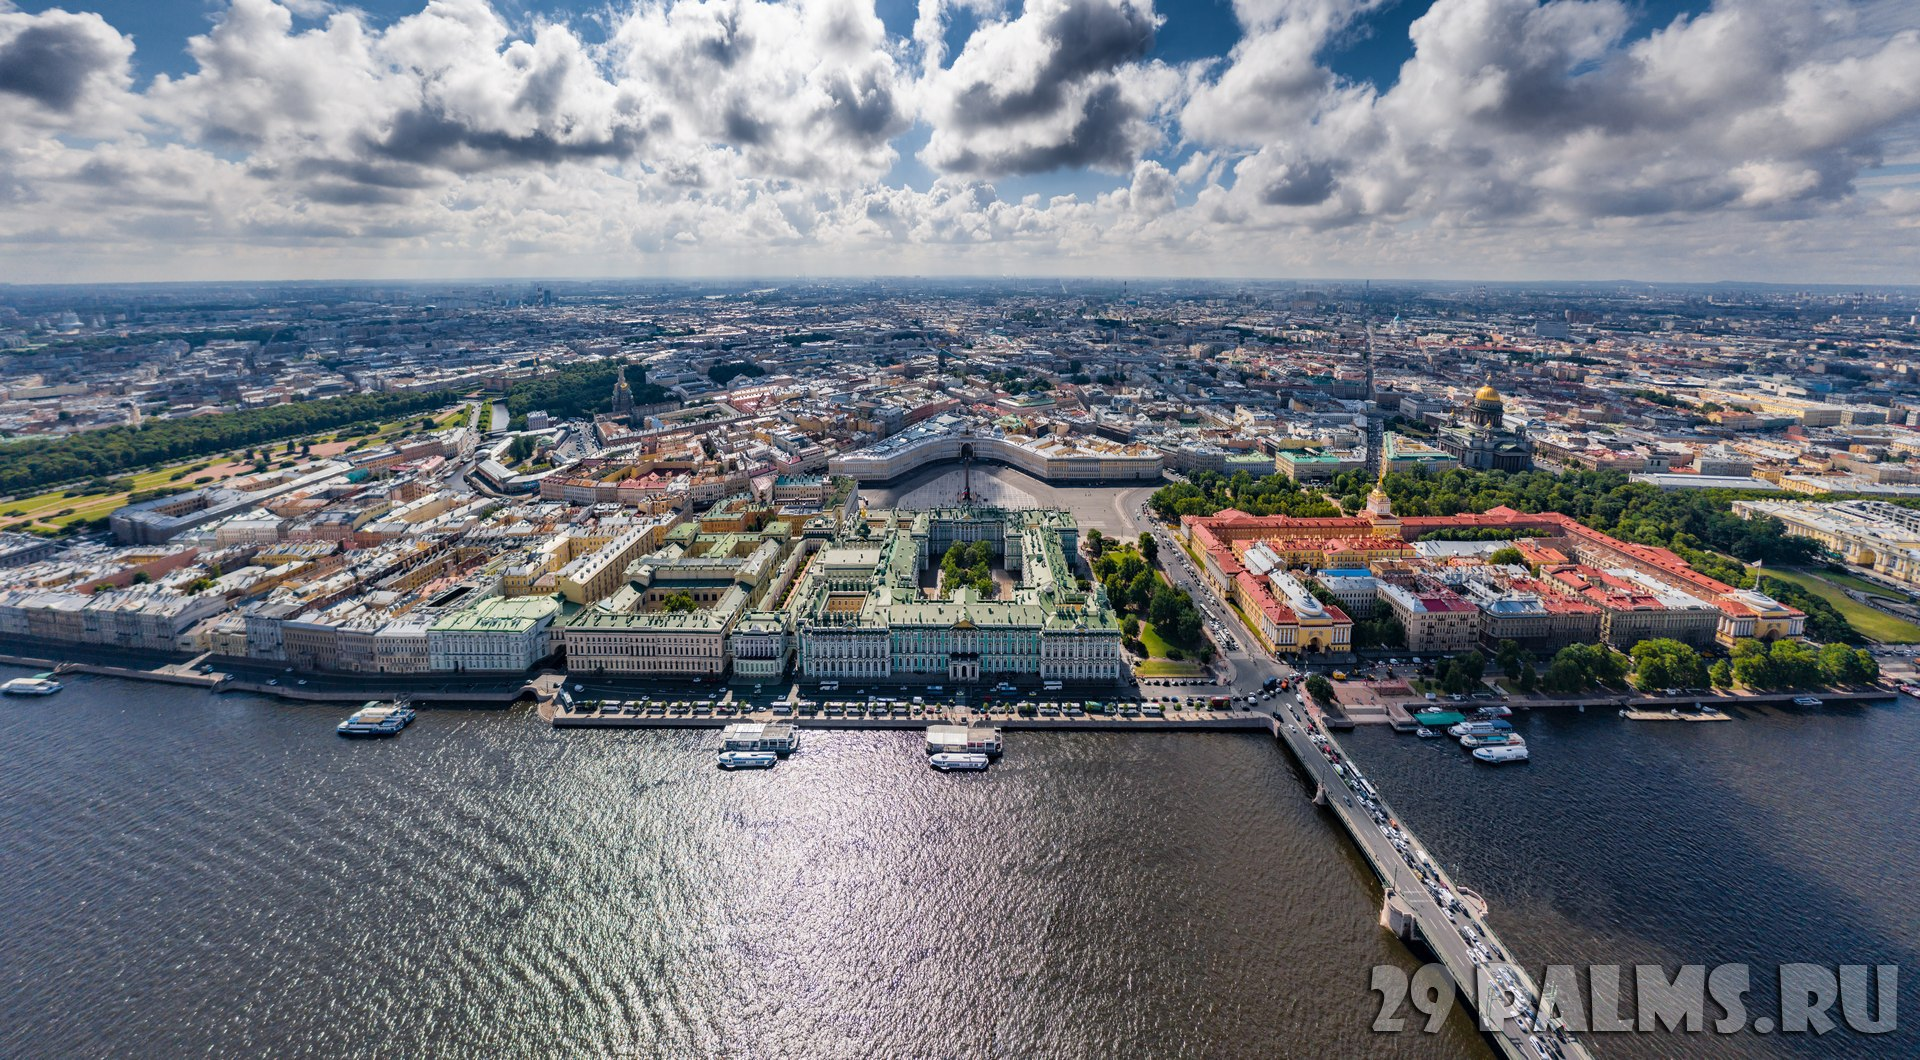 Россия. Панорама центра Санкт-Петербурга. Aerial panorama of Saint Petersburg, the Hermitage museum, Winter Palace, Palace Square. Фото VladimirDrozdin - Deposit